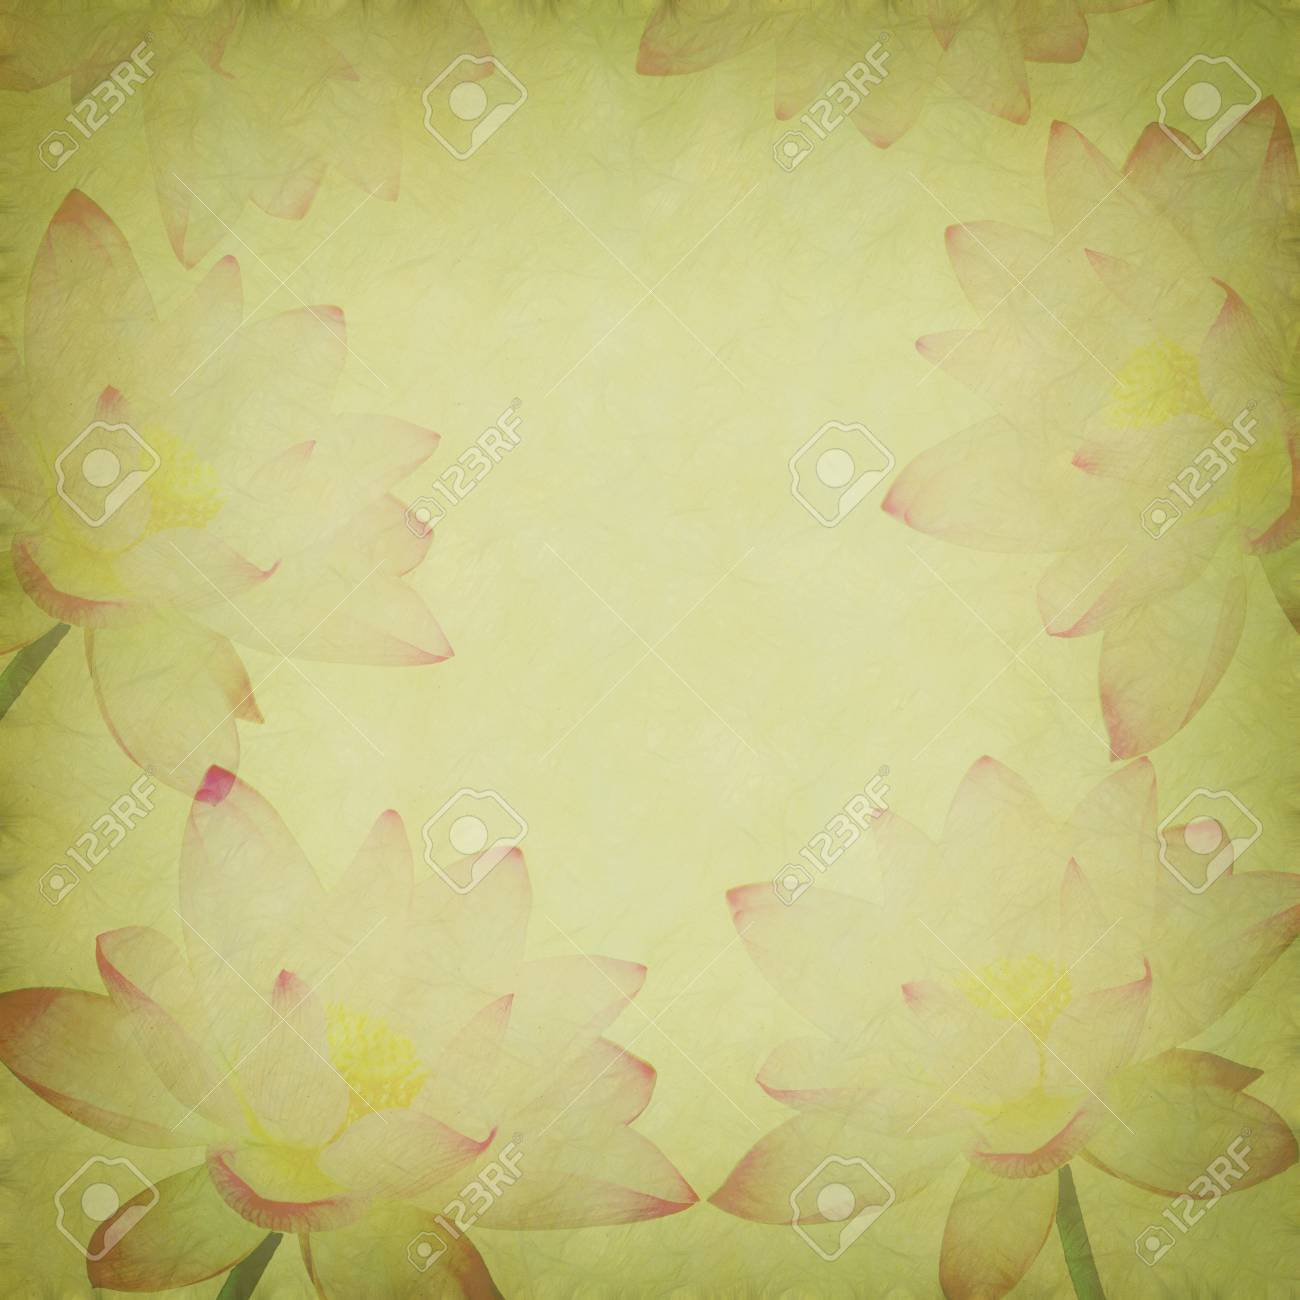 Water Lily on grunge textured background Stock Photo - 14447917